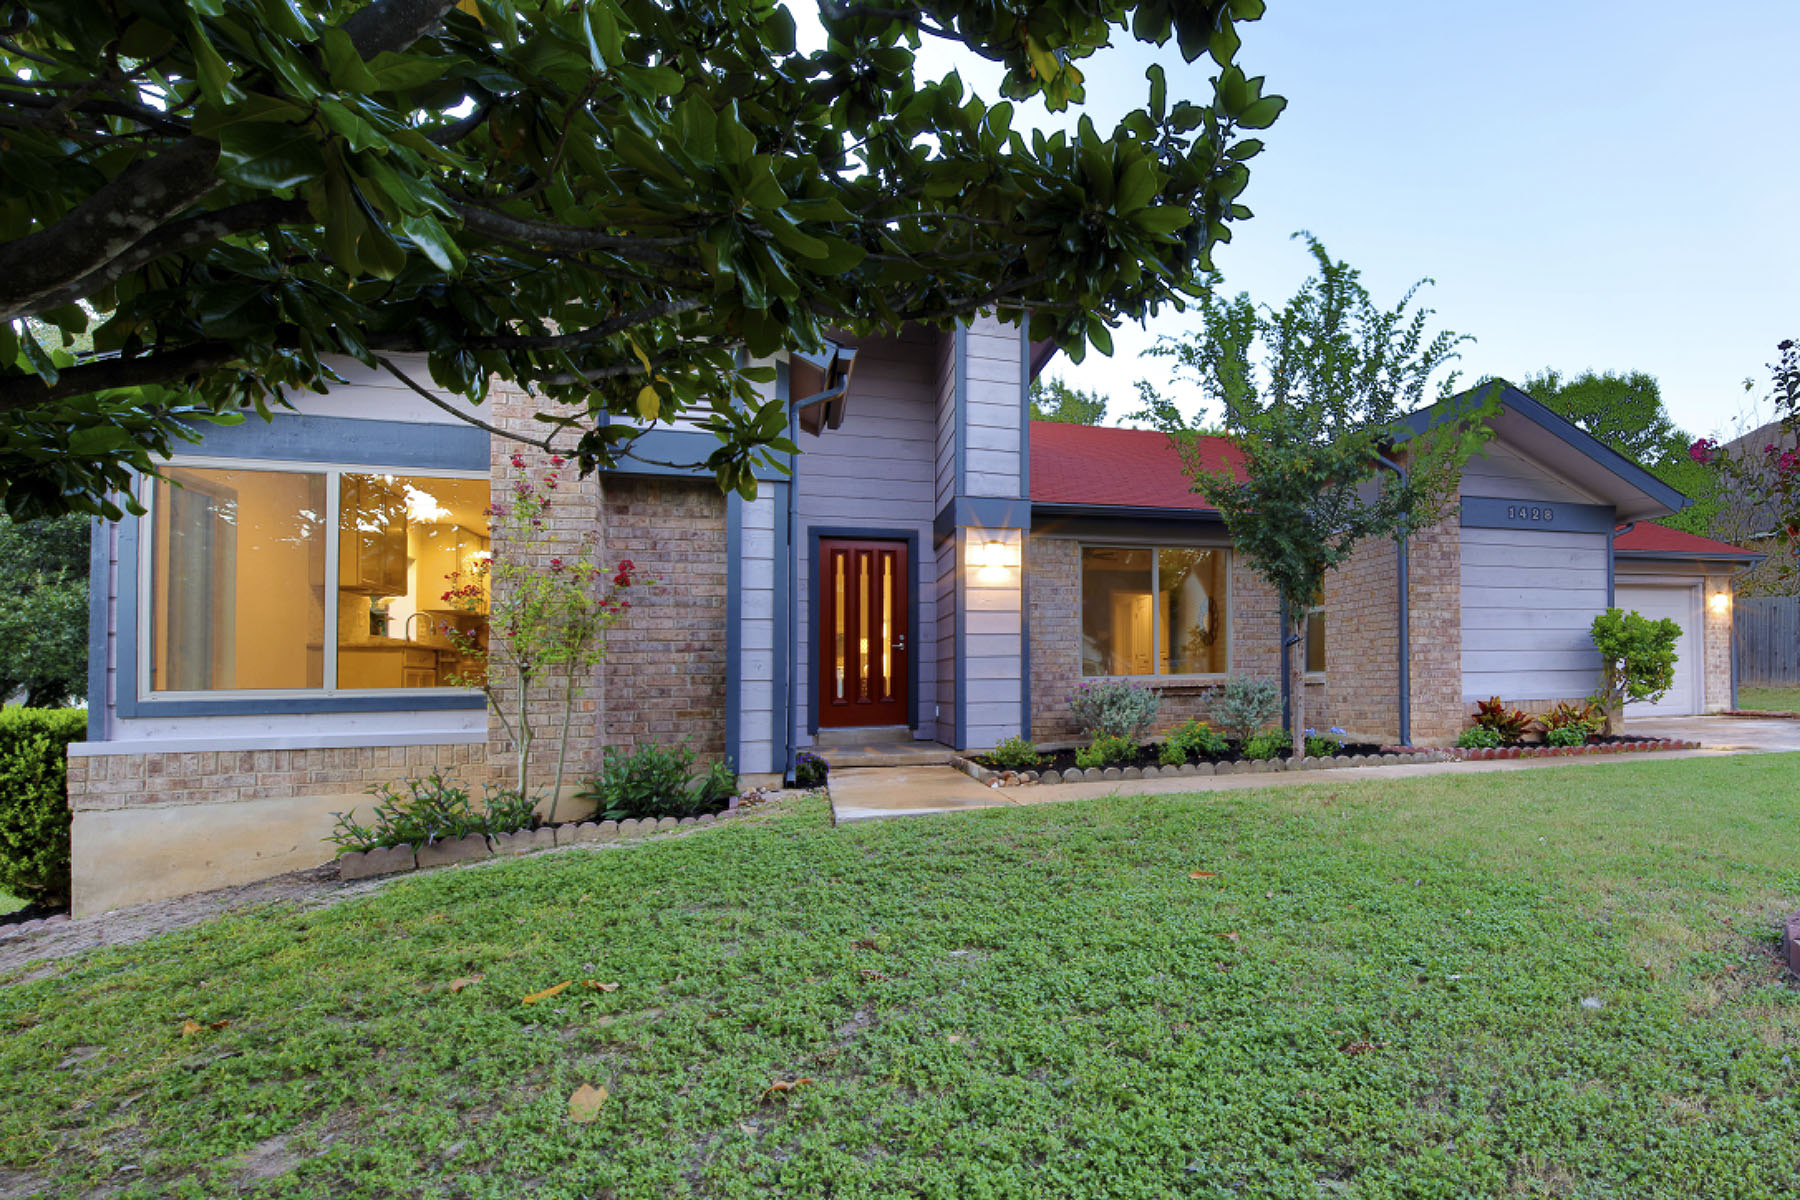 Additional photo for property listing at Completely Remodeled with Architectural Charm 1428 Gracy Dr Austin, Texas 78758 United States